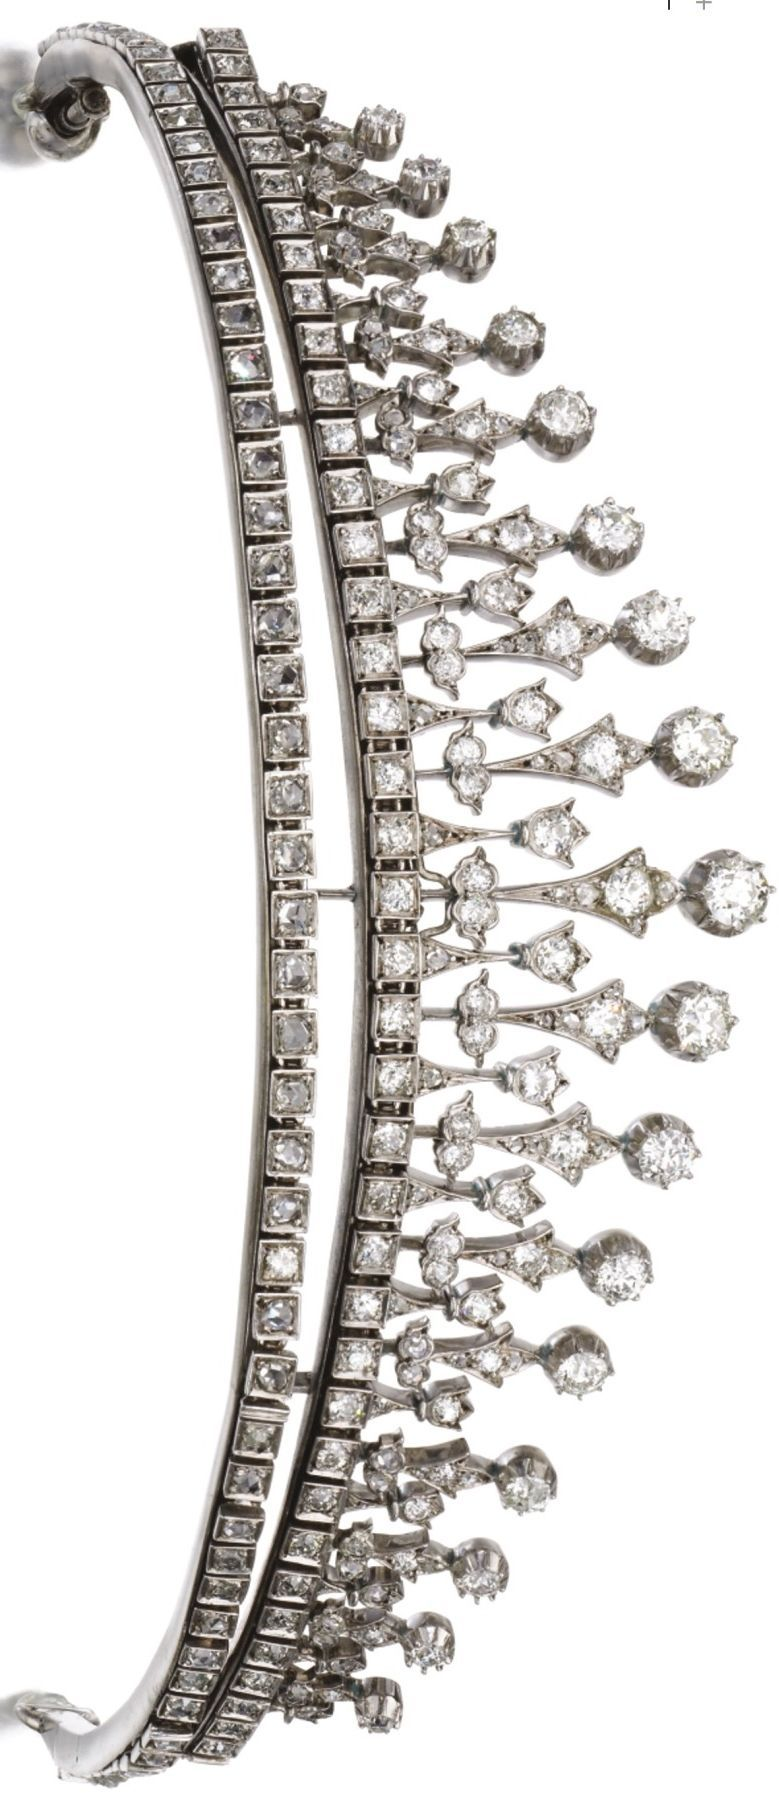 Diamond necklace/tiara, circa 1880 Designed as a series of graduated floret motifs, set with circular-cut and rose diamonds, tiara mount detachable, convertible into a necklace of fringe design with extension fittings, length approximately 450mm, fitted case stamped James R. Ogden. Image Sotherby's